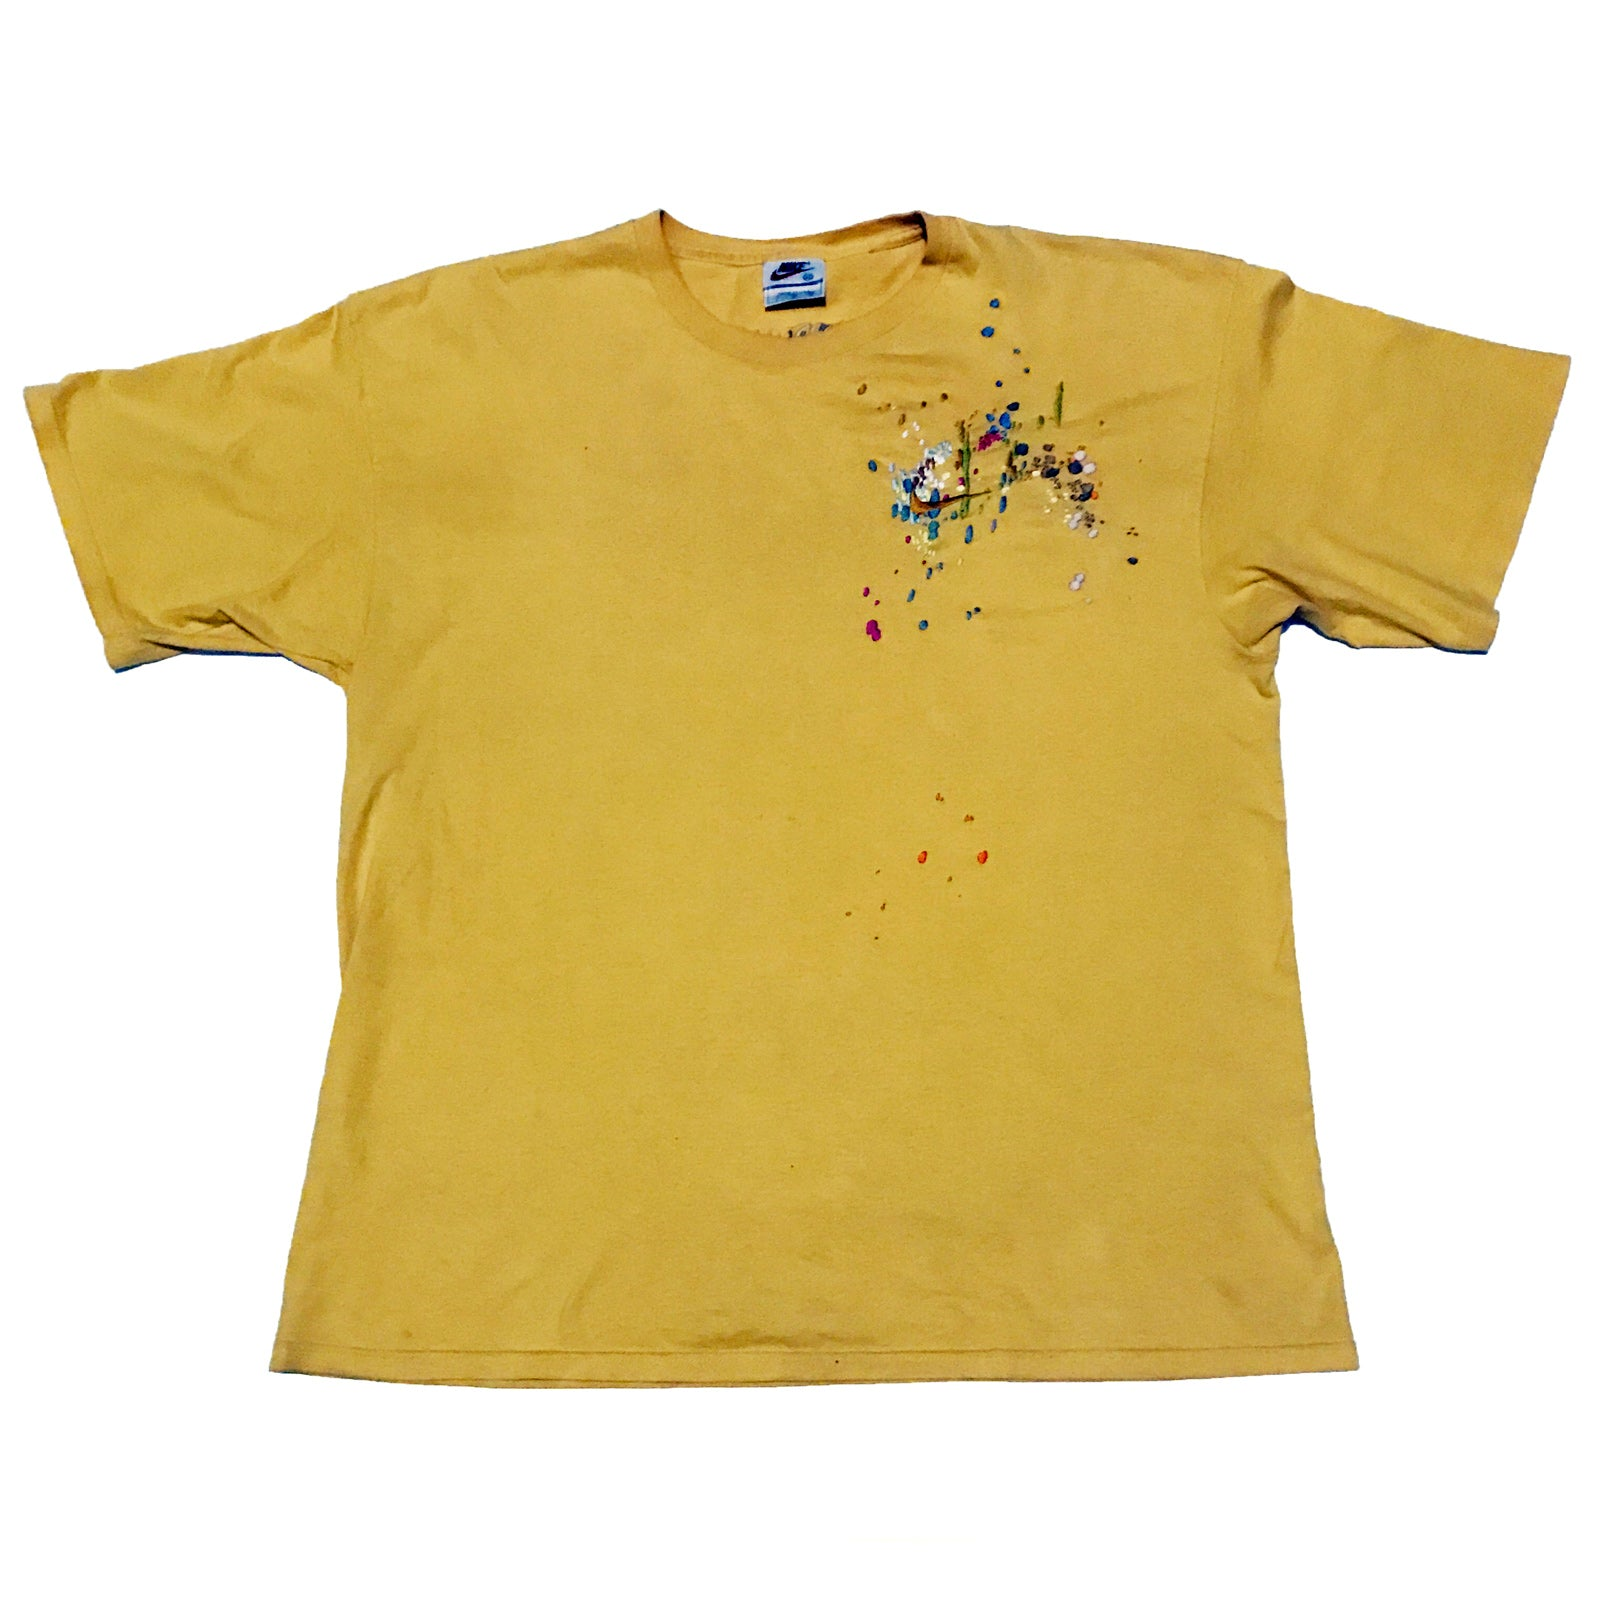 "BANDULU "" BIG BIRD "" VINTAGE NIKE TEE XL"